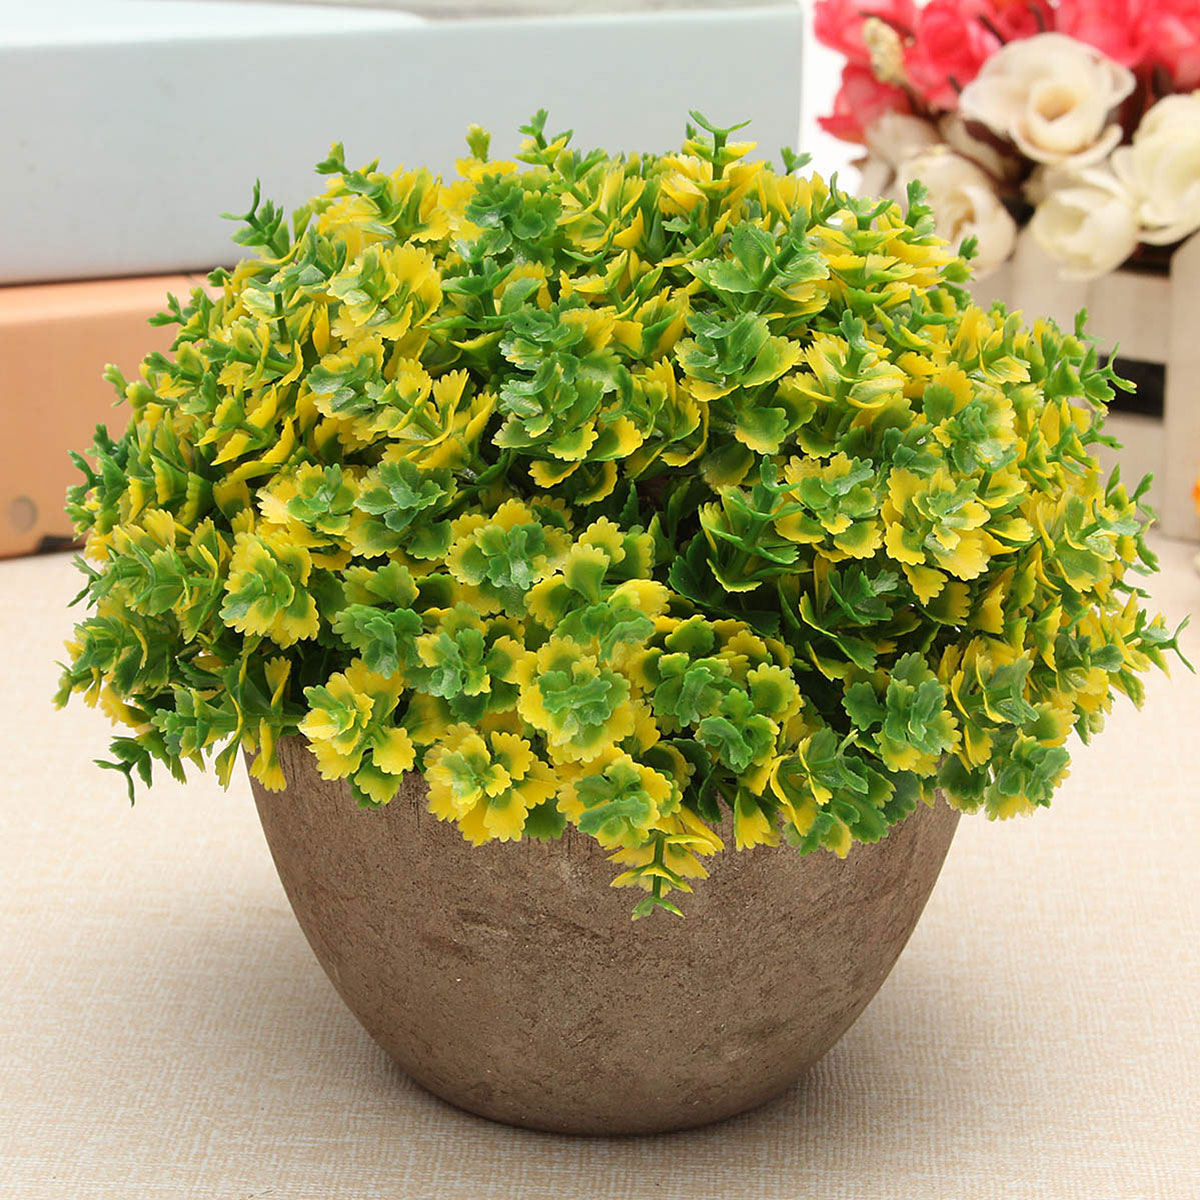 Artificial grass flowers plants in pot home house office for Artificial plants indoor decoration